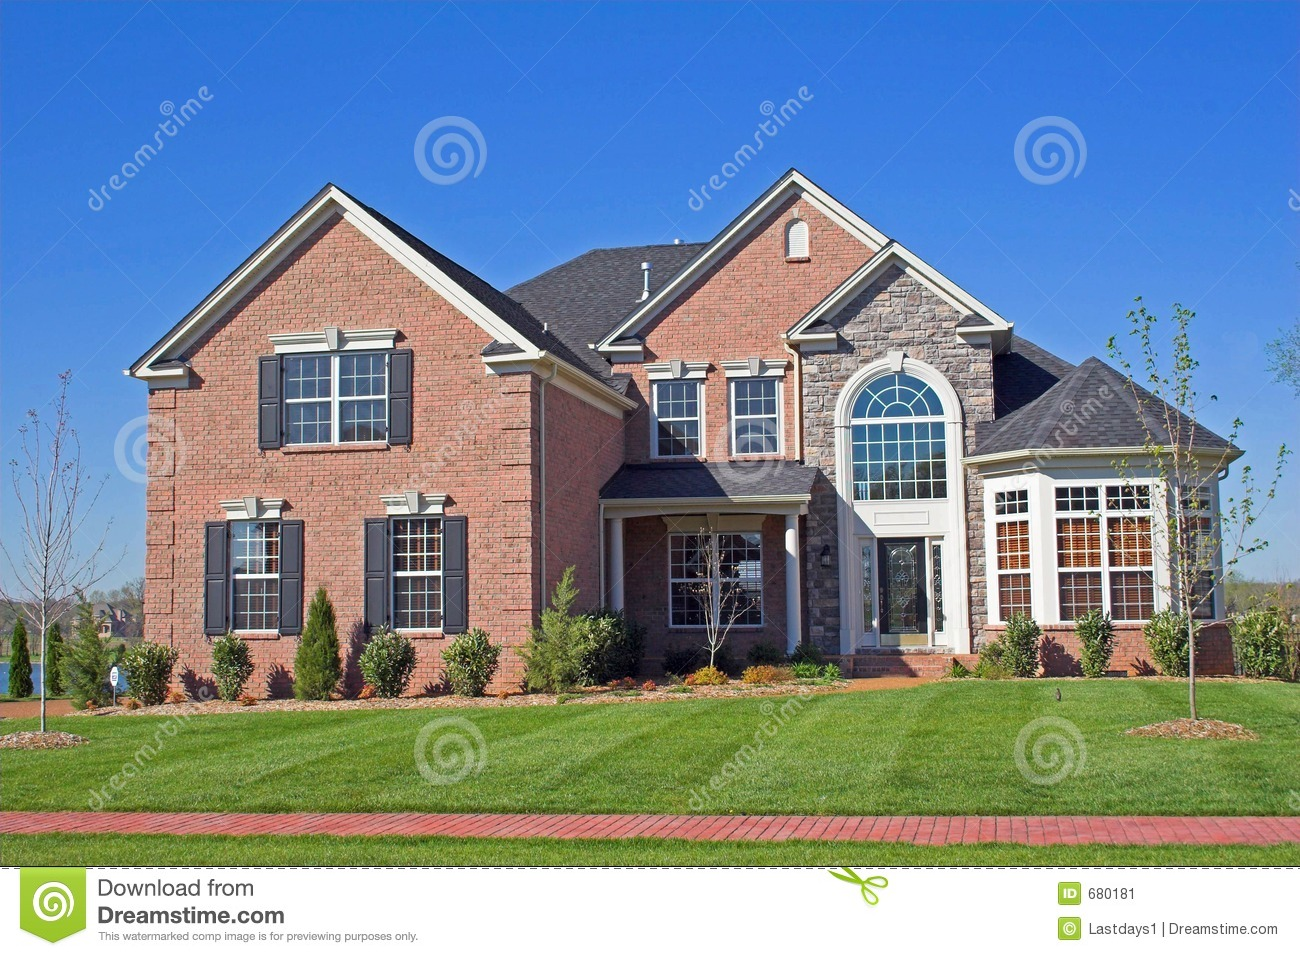 Beautiful homes series 1d stock image image 680181 for Beautiful house images